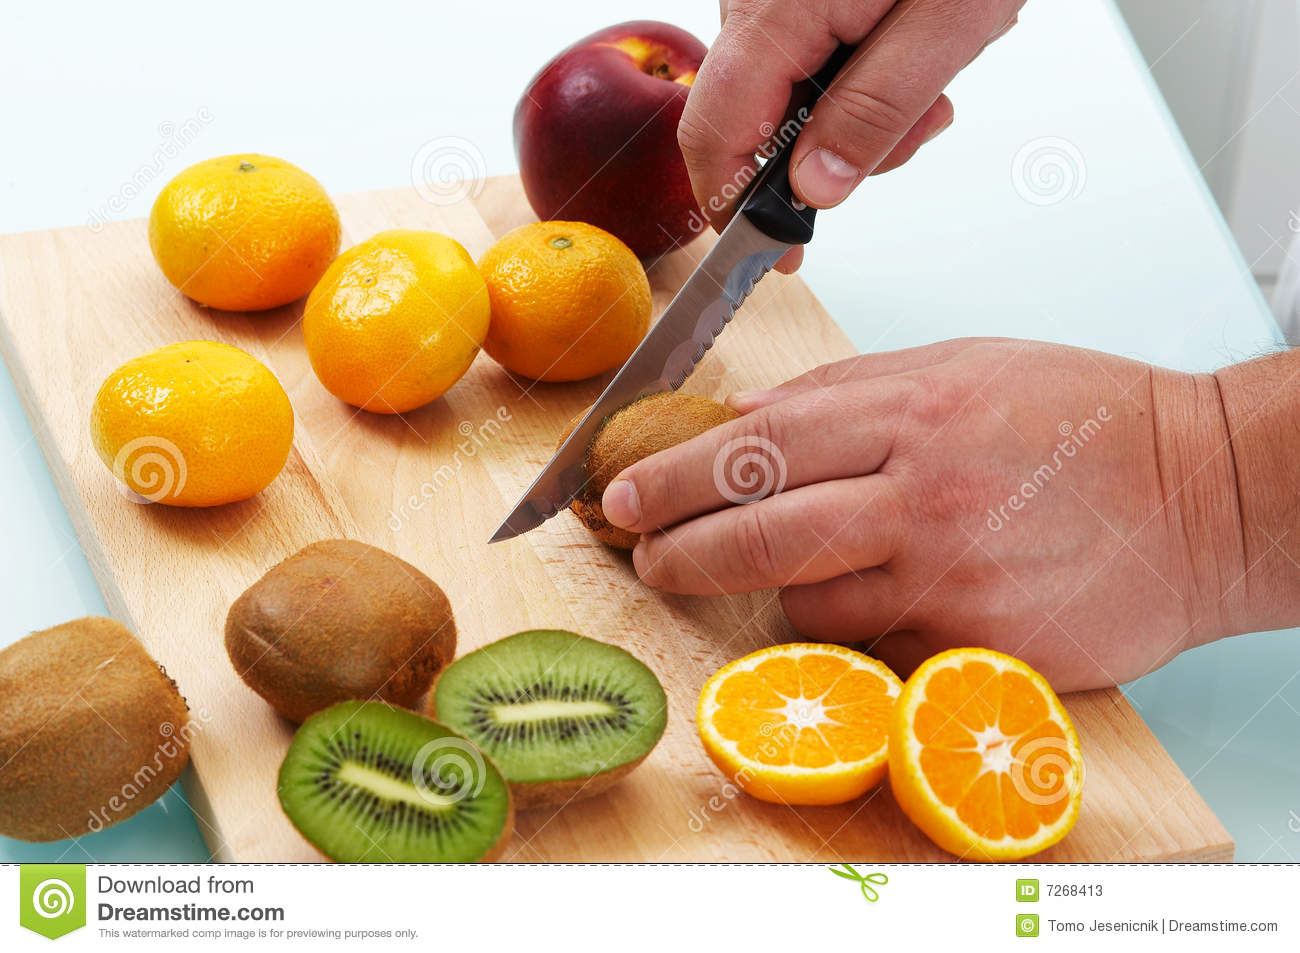 More similar stock images of ` Cutting different fruits `